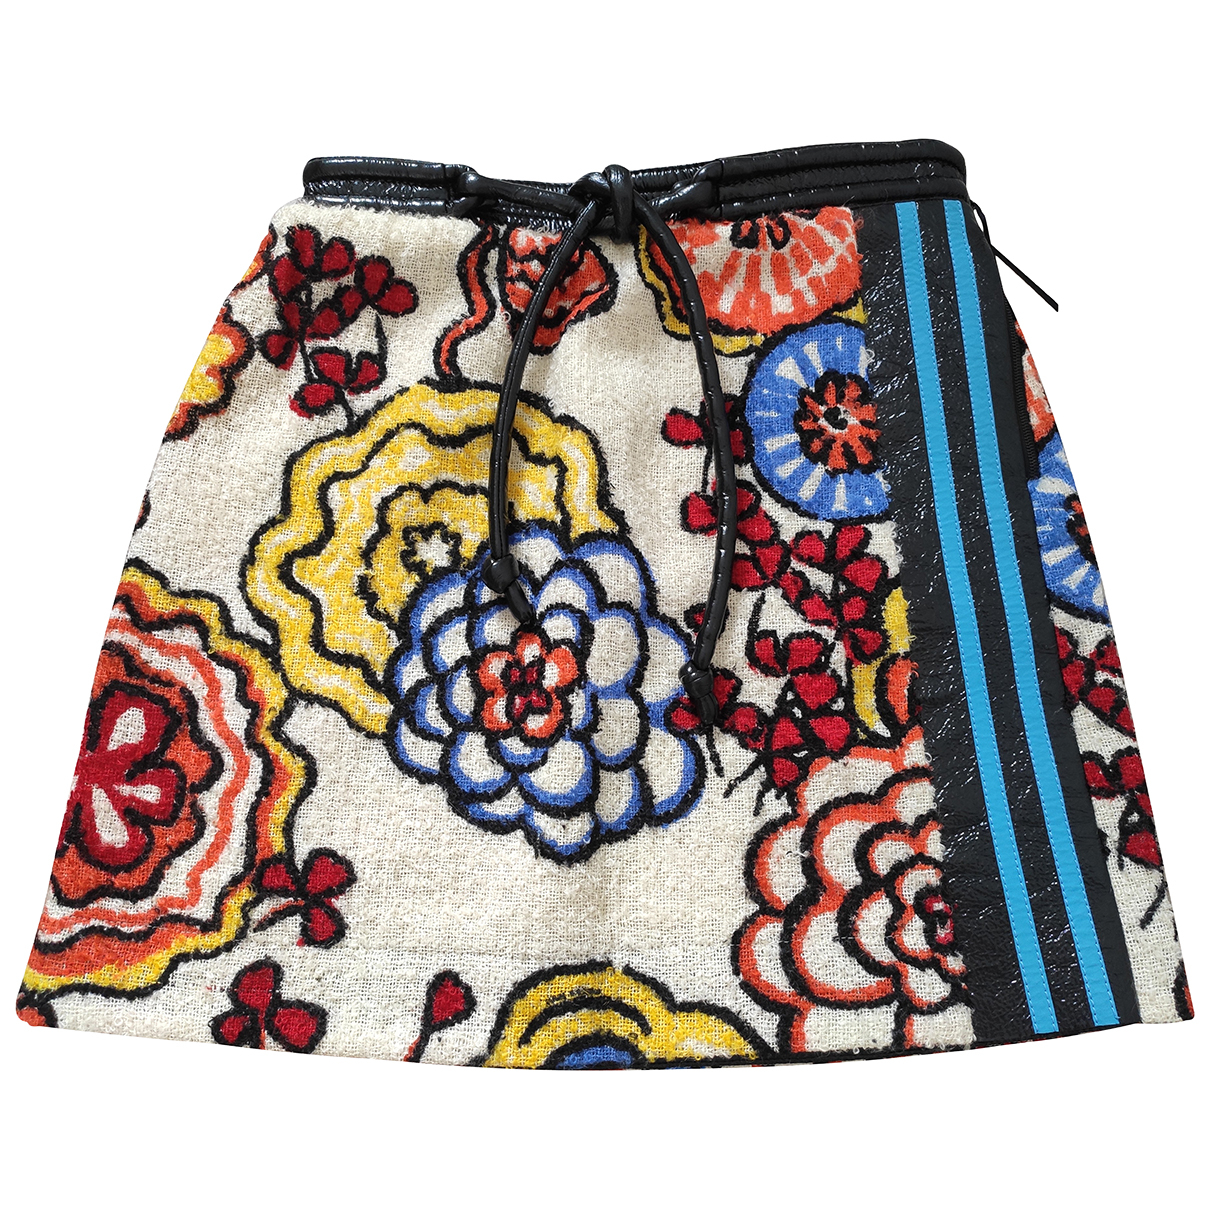 Louis Vuitton N Multicolour skirt for Women 38 FR